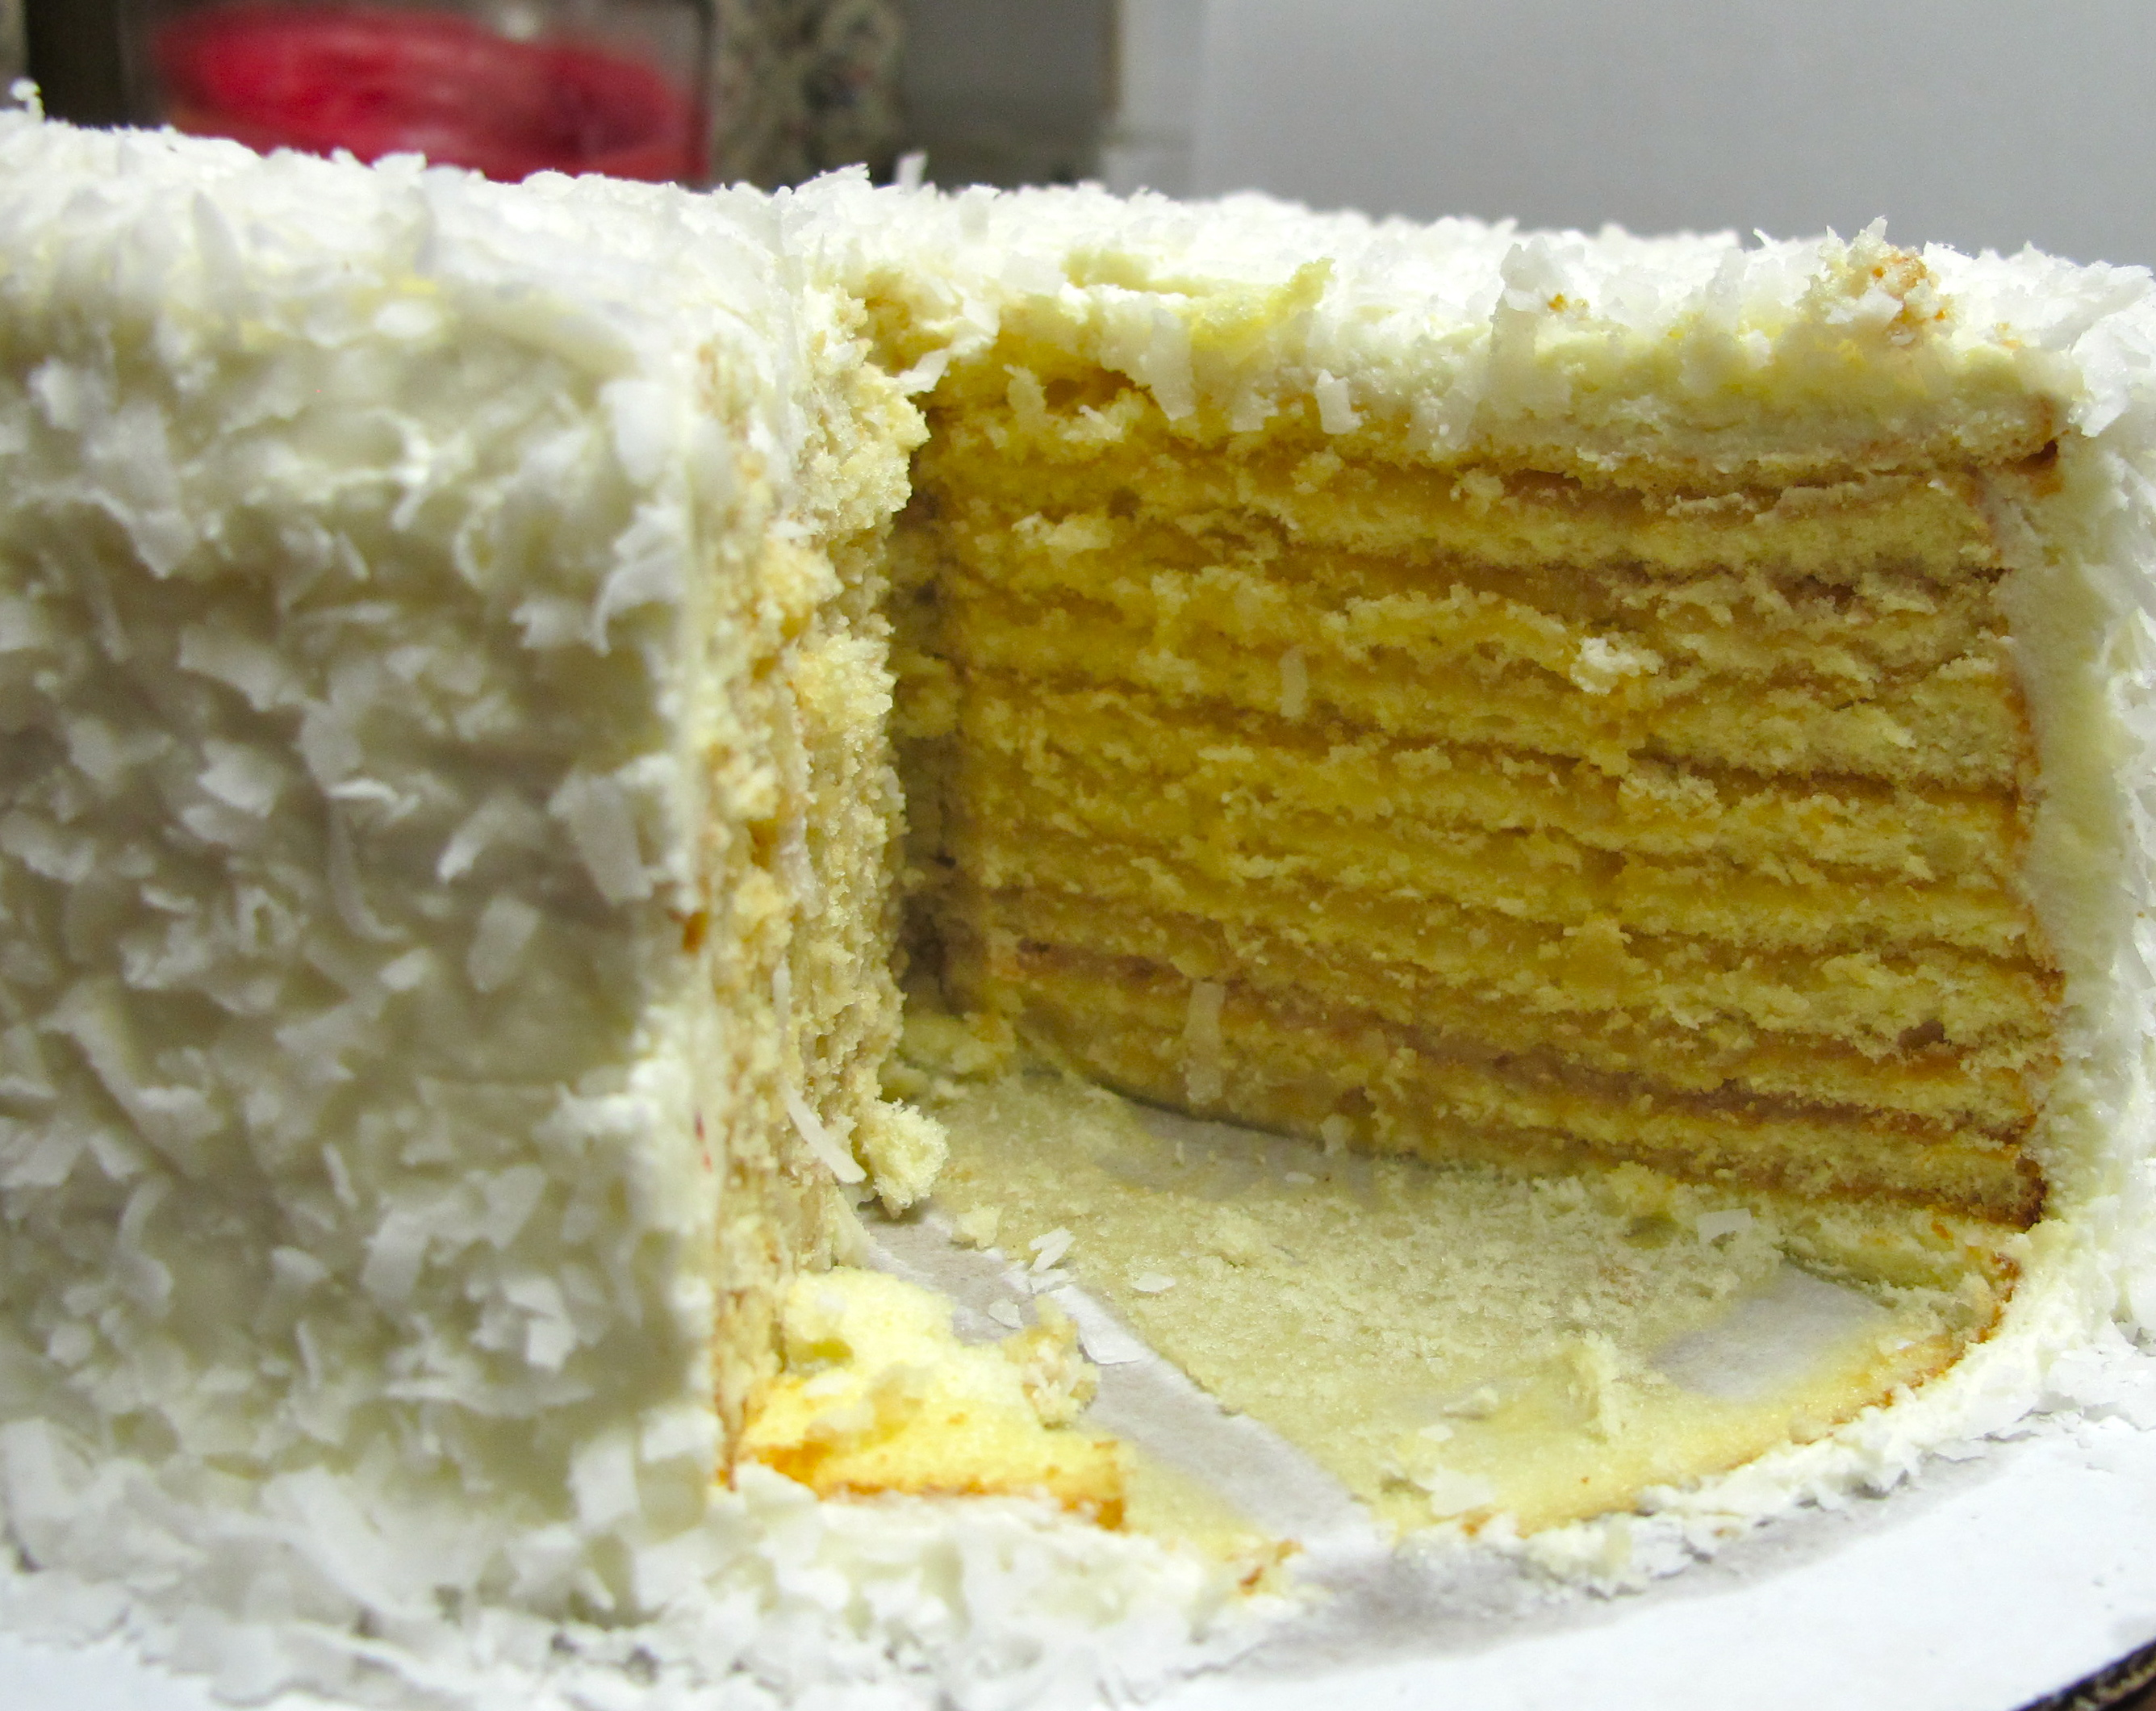 bear cuisine cake a smith island cake coconut frosting